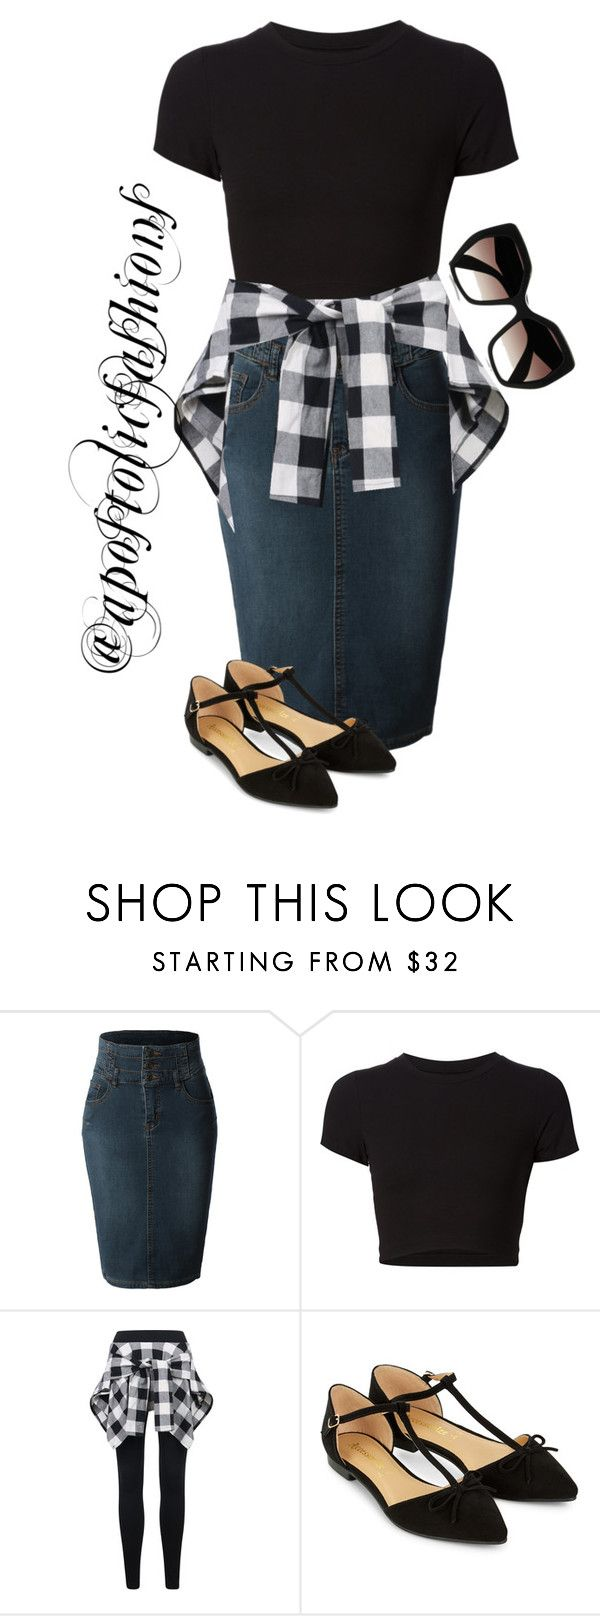 """""""Apostolic Fashions #1325"""" by apostolicfashions on Polyvore featuring LE3NO, Getting Back To Square One, Accessorize and Prada"""